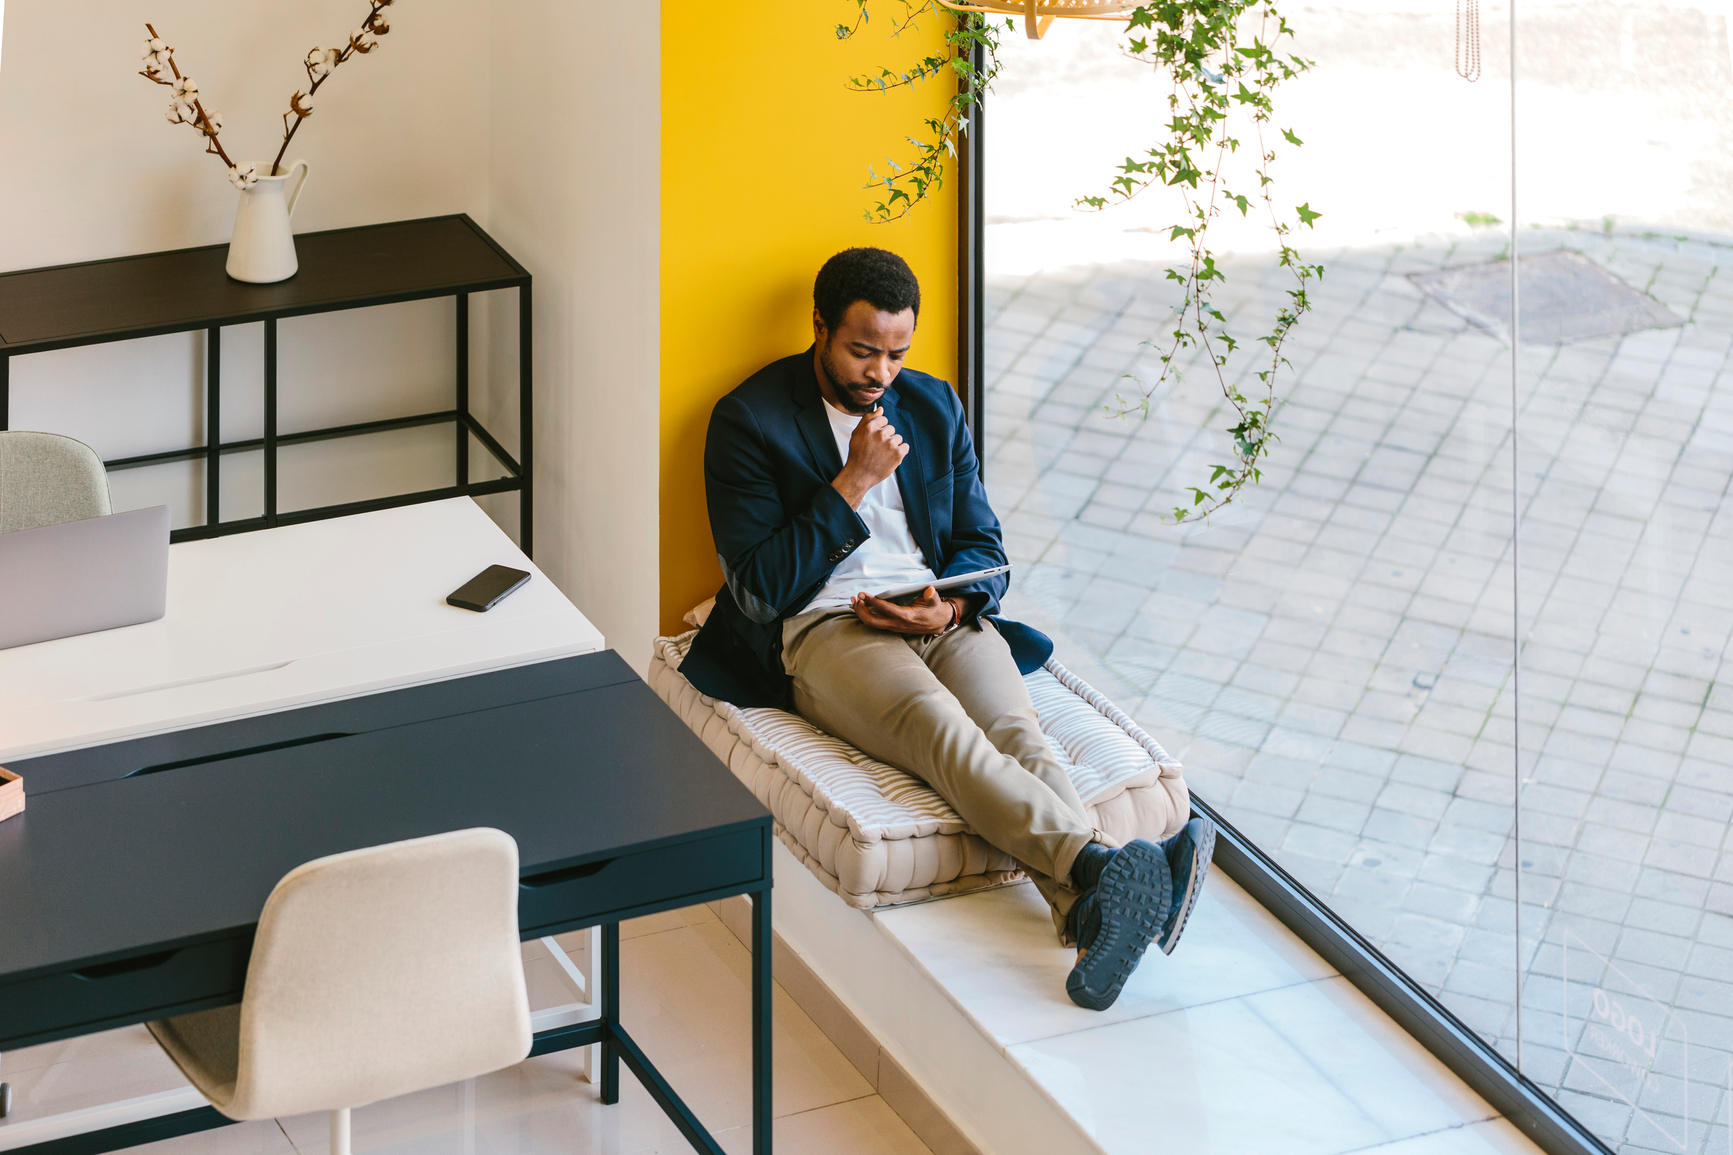 The 5 key elements of successful smart offices